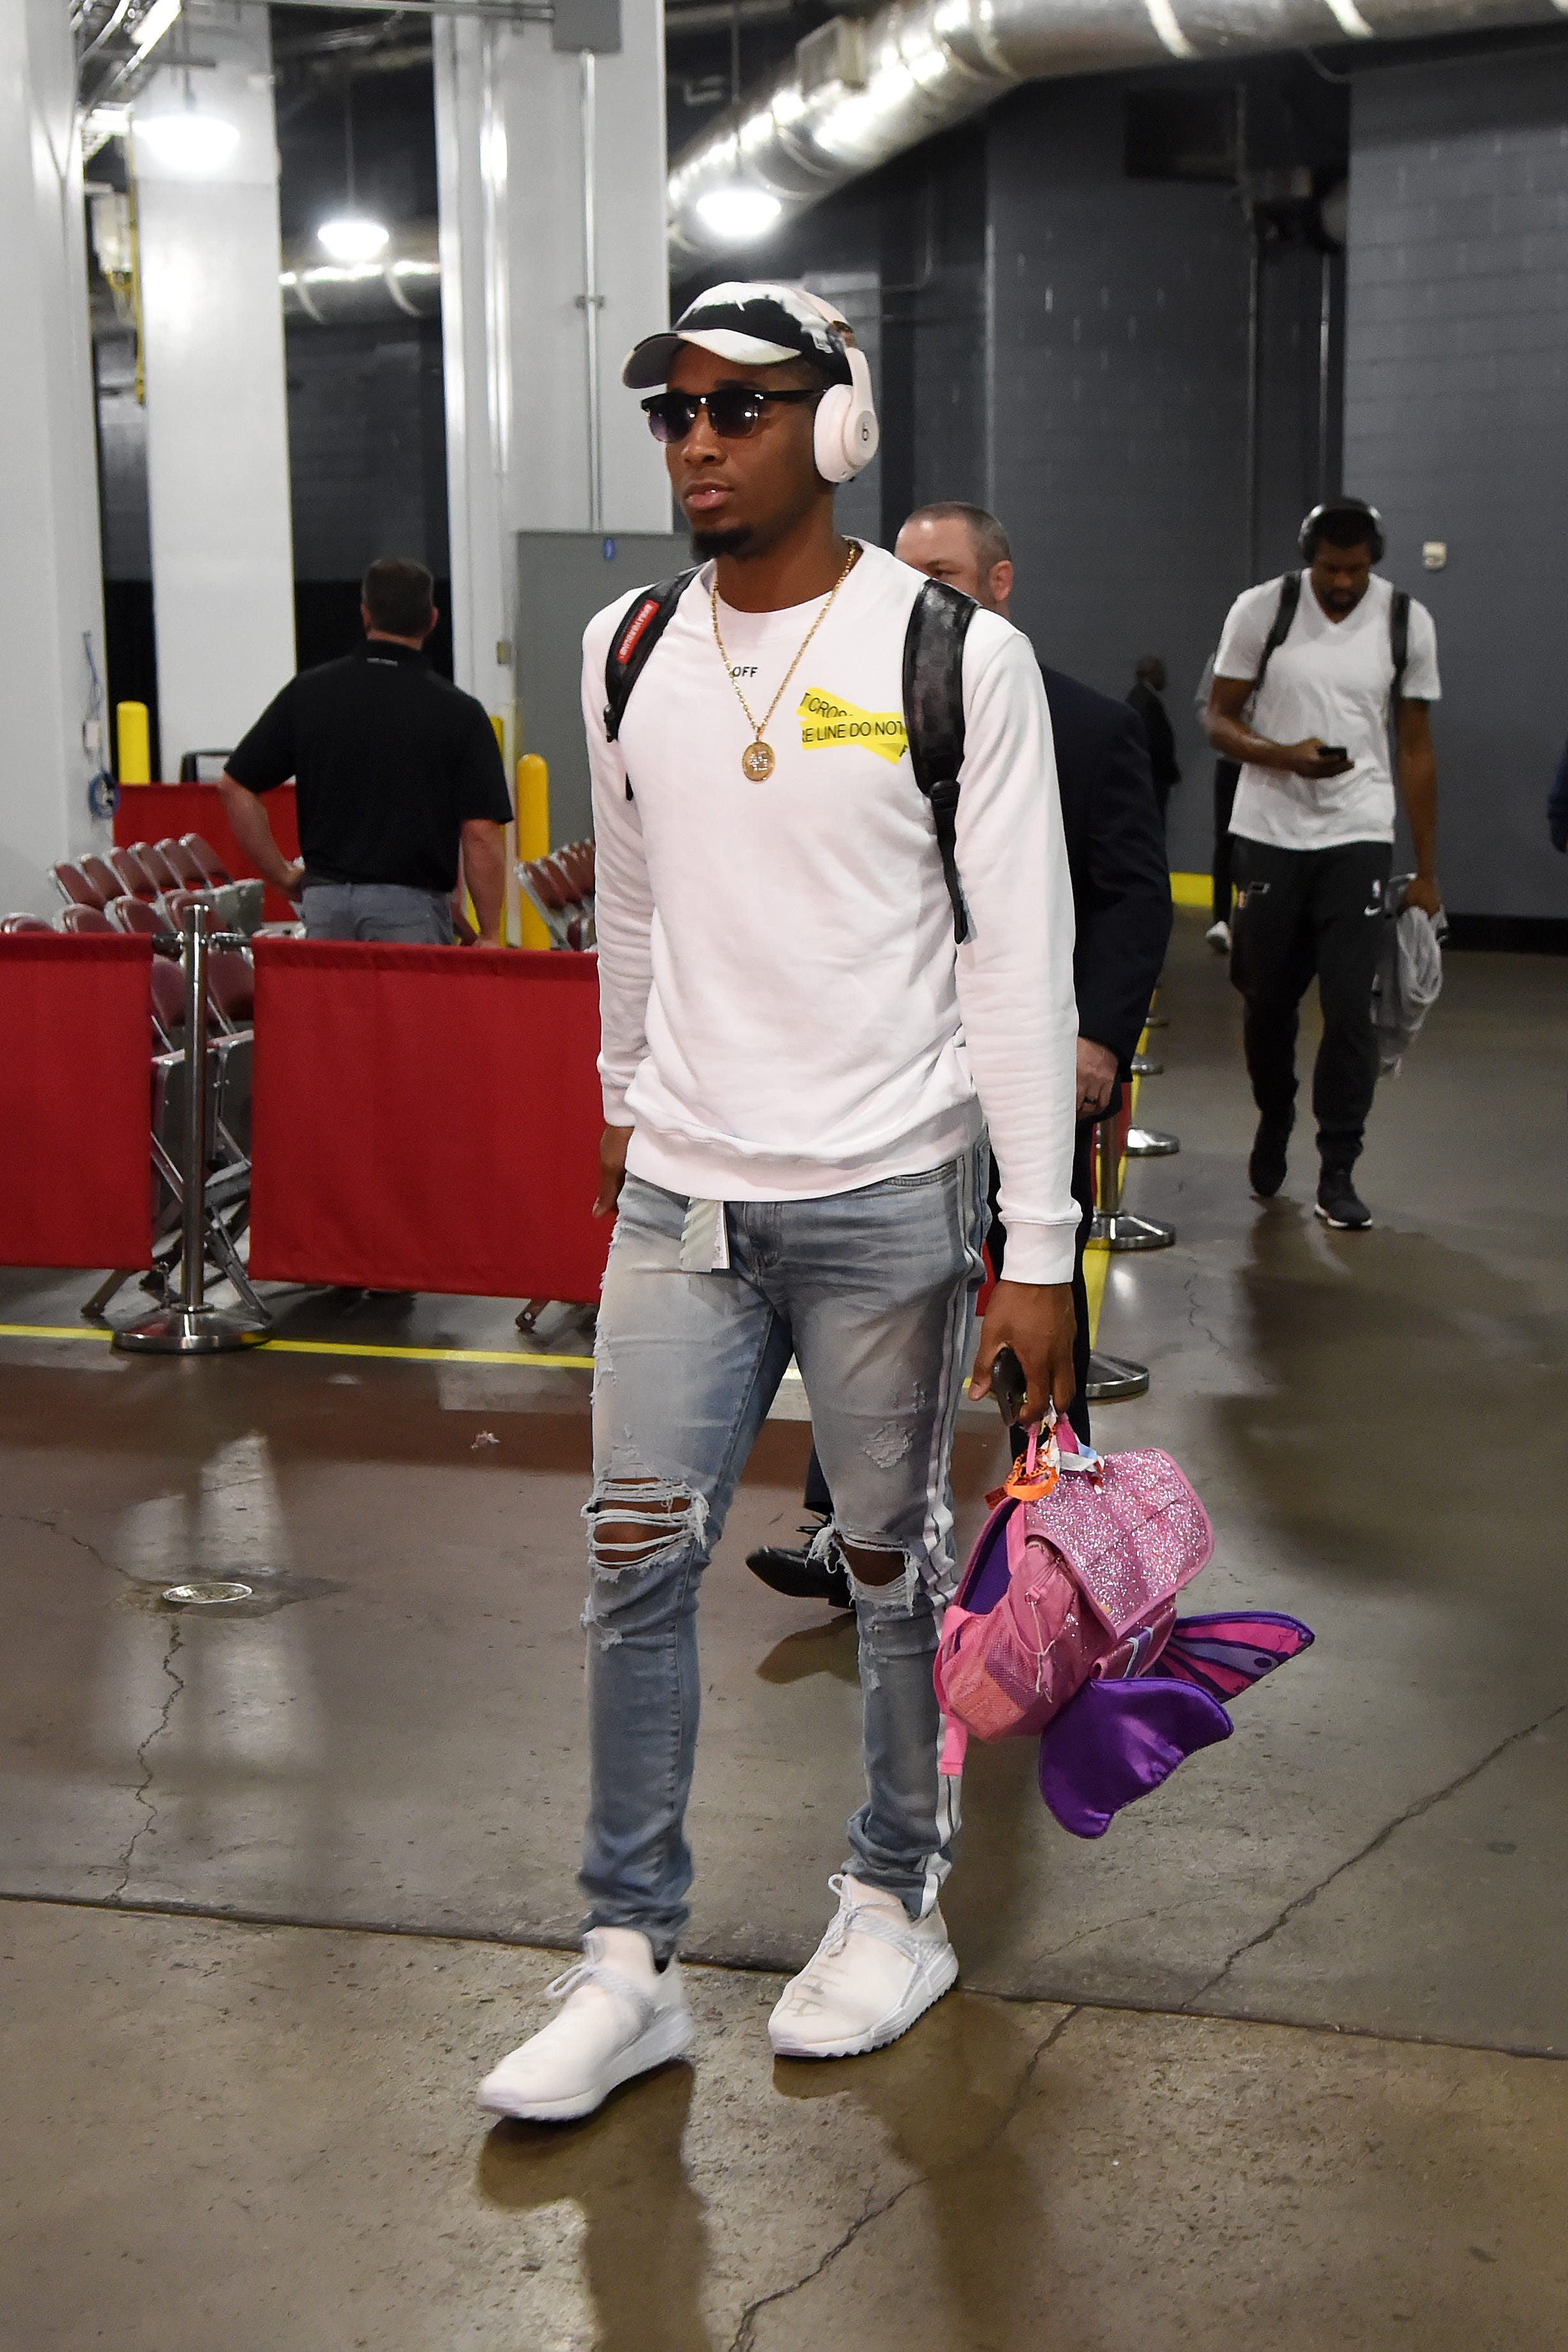 The Nba Players With The Best Style Lebron James